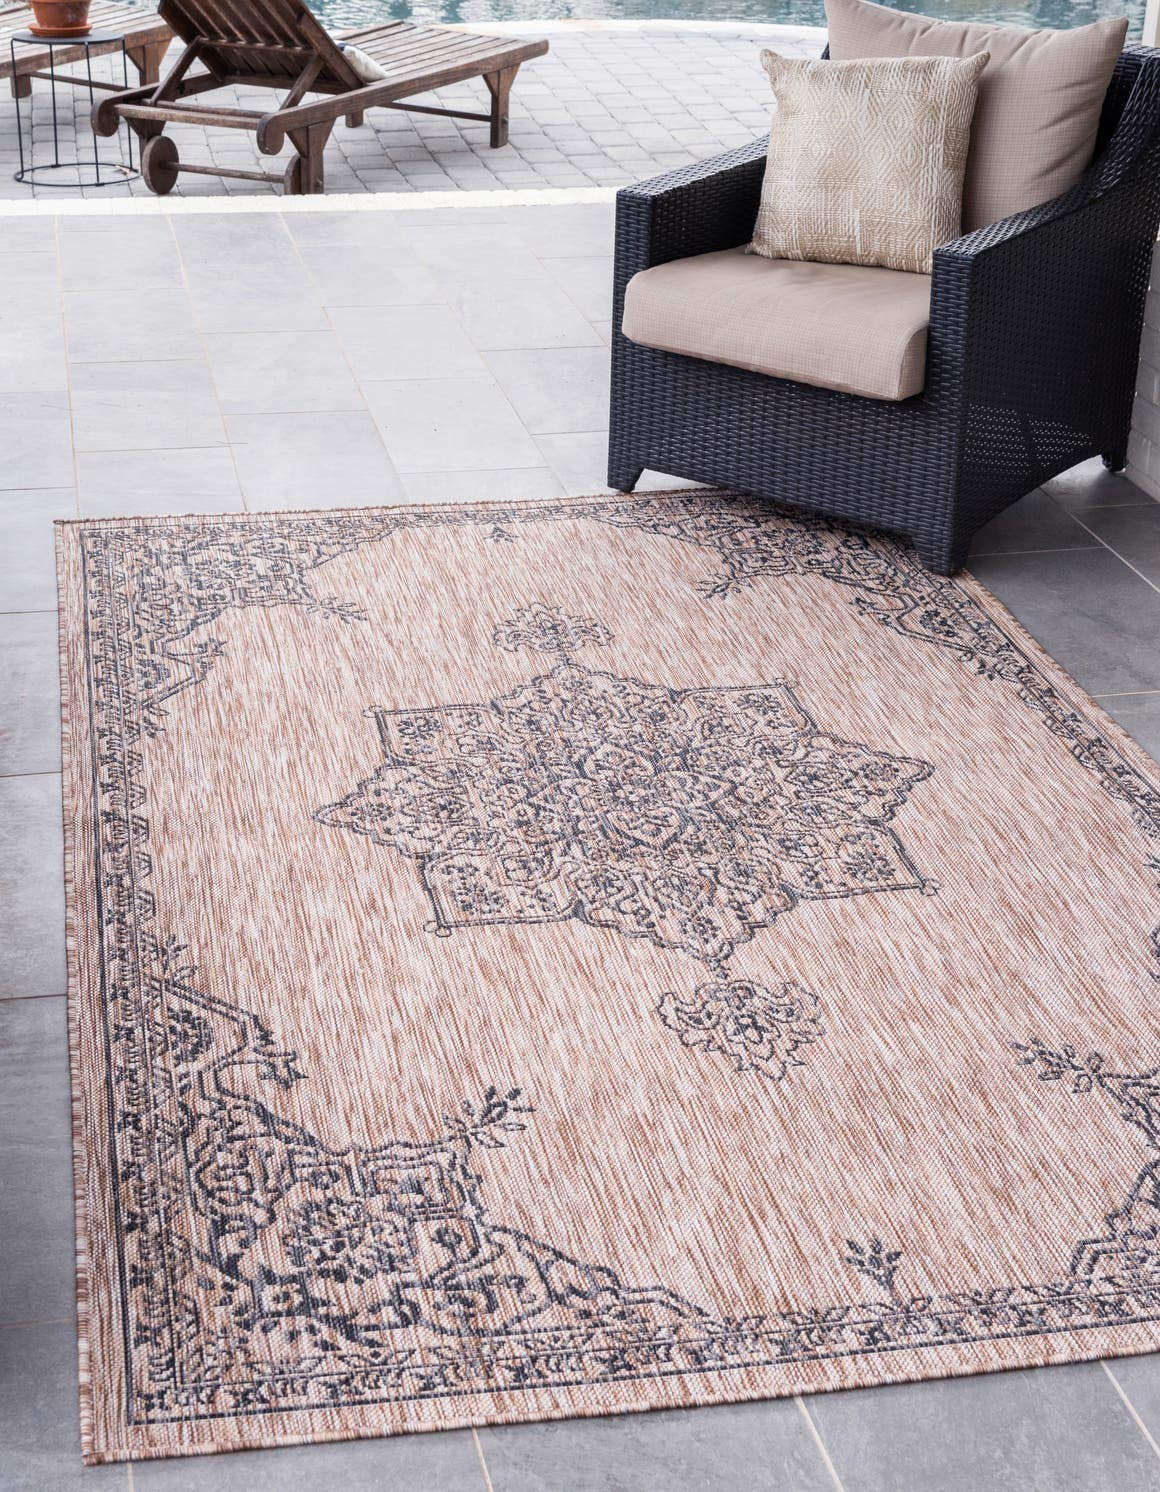 Unique Loom Outdoor Traditional Collection Classic Medallion Transitional Indoor and Outdoor Flatweave Beige Area Rug 5 0 x 8 0